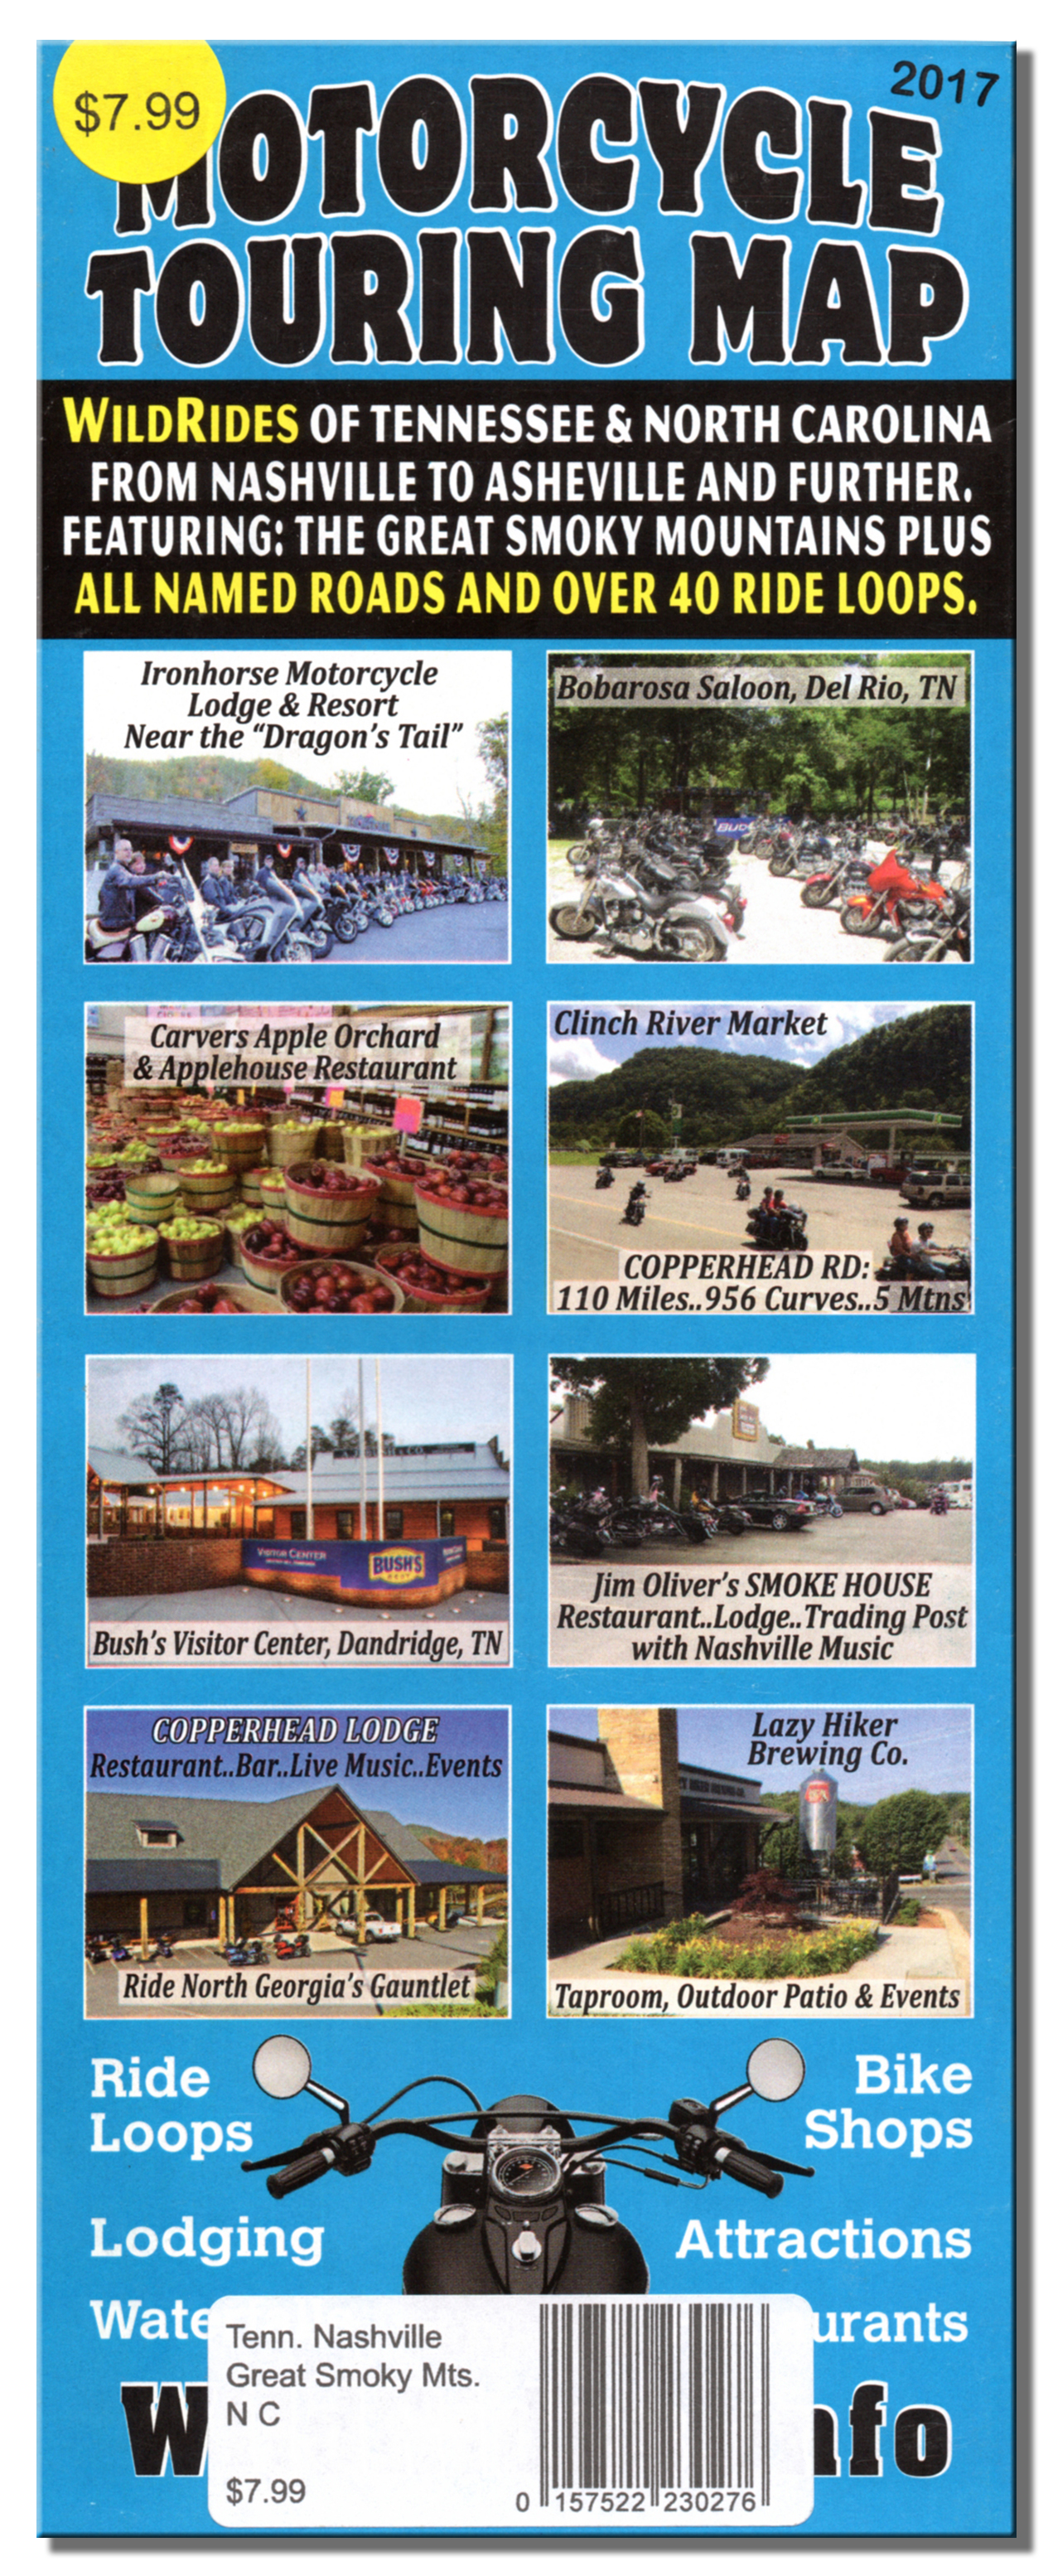 Motorcycle Touring Map Wildrides Of Tennessee North Carolina